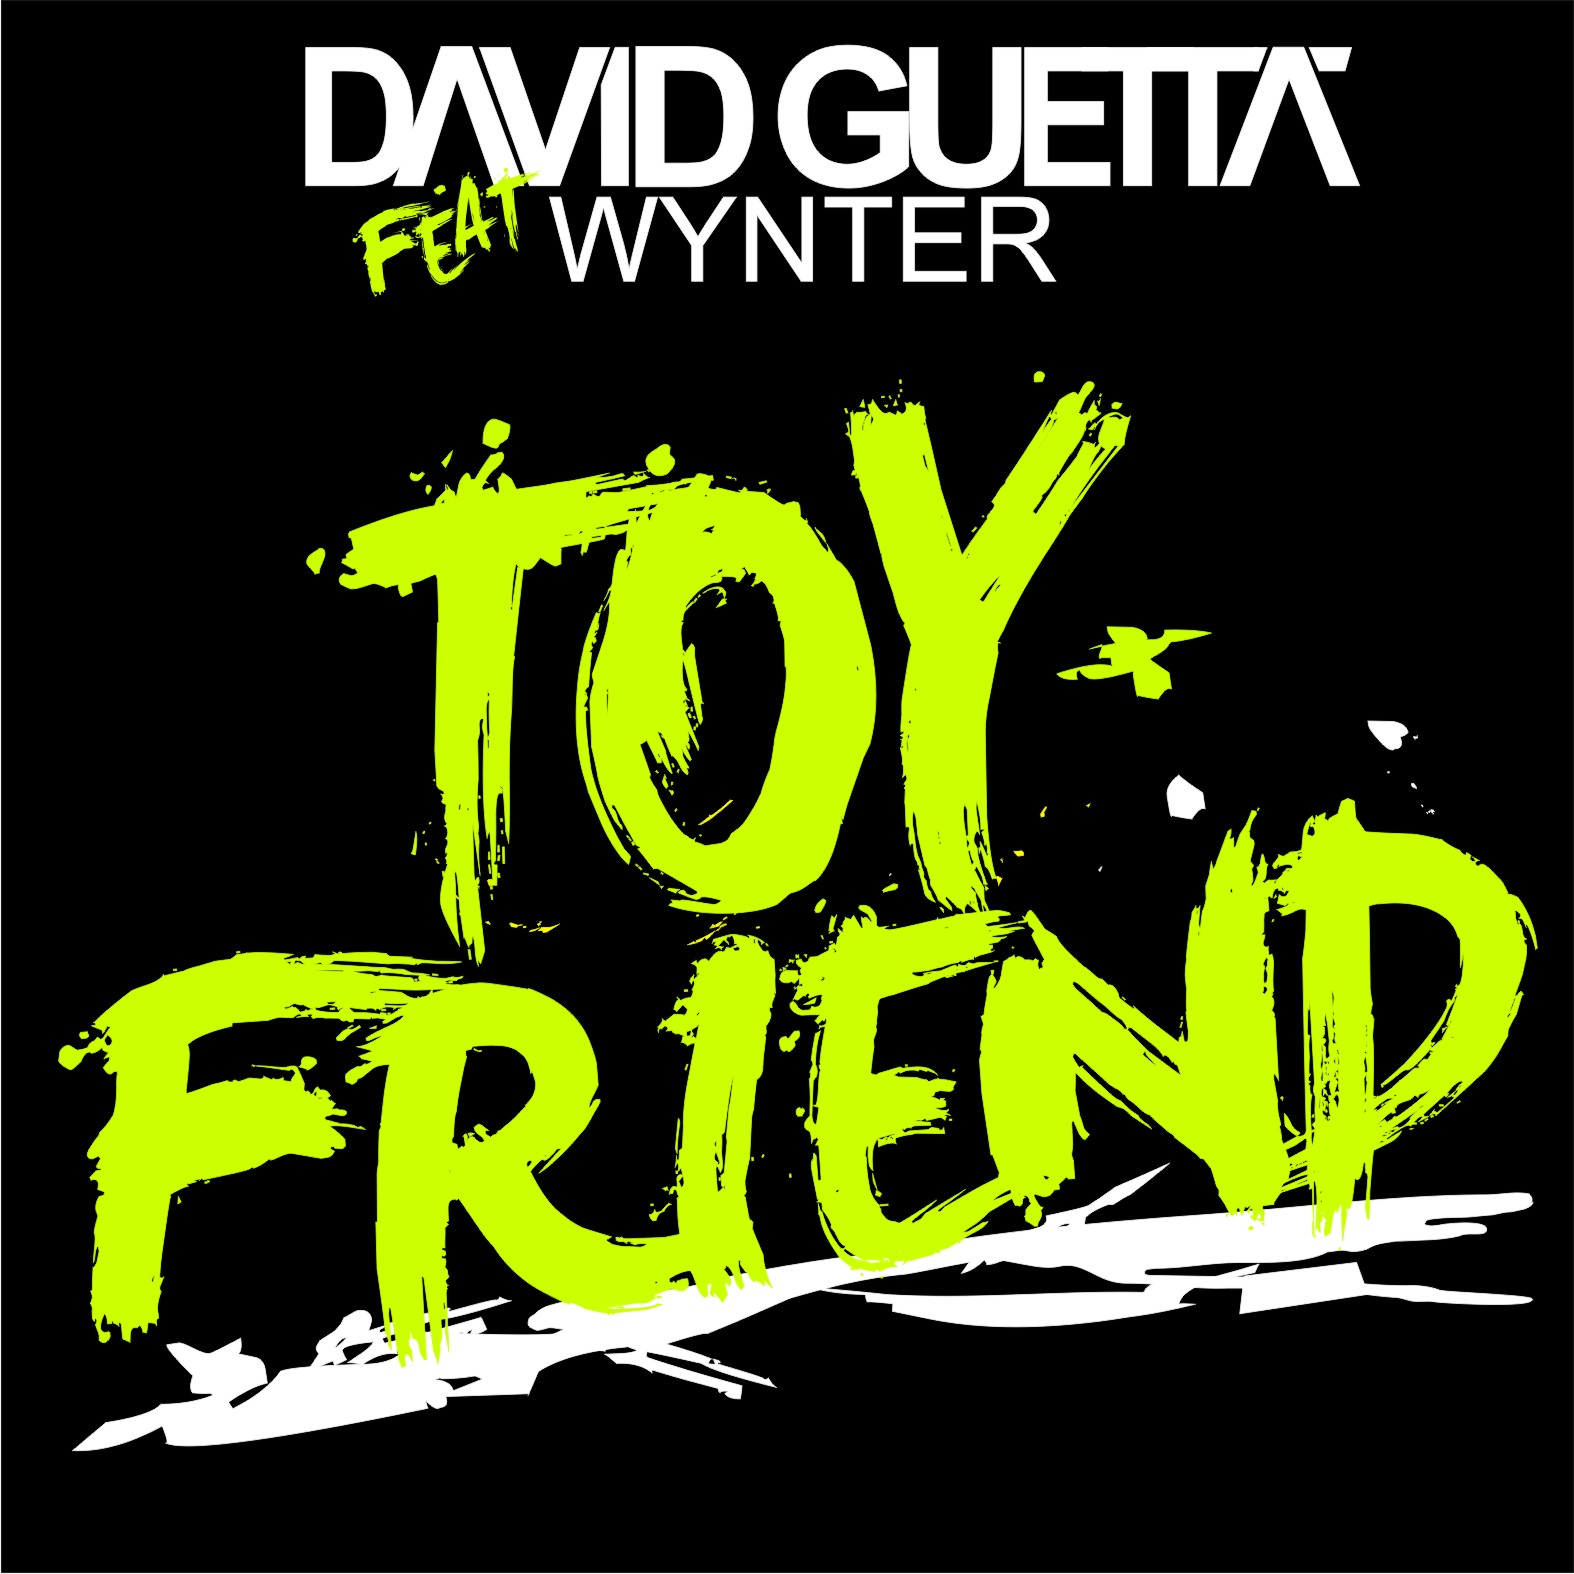 Coverlandia The 1 Place For Album Single Cover S David Guetta Toy Friend Fanmade Single Cover